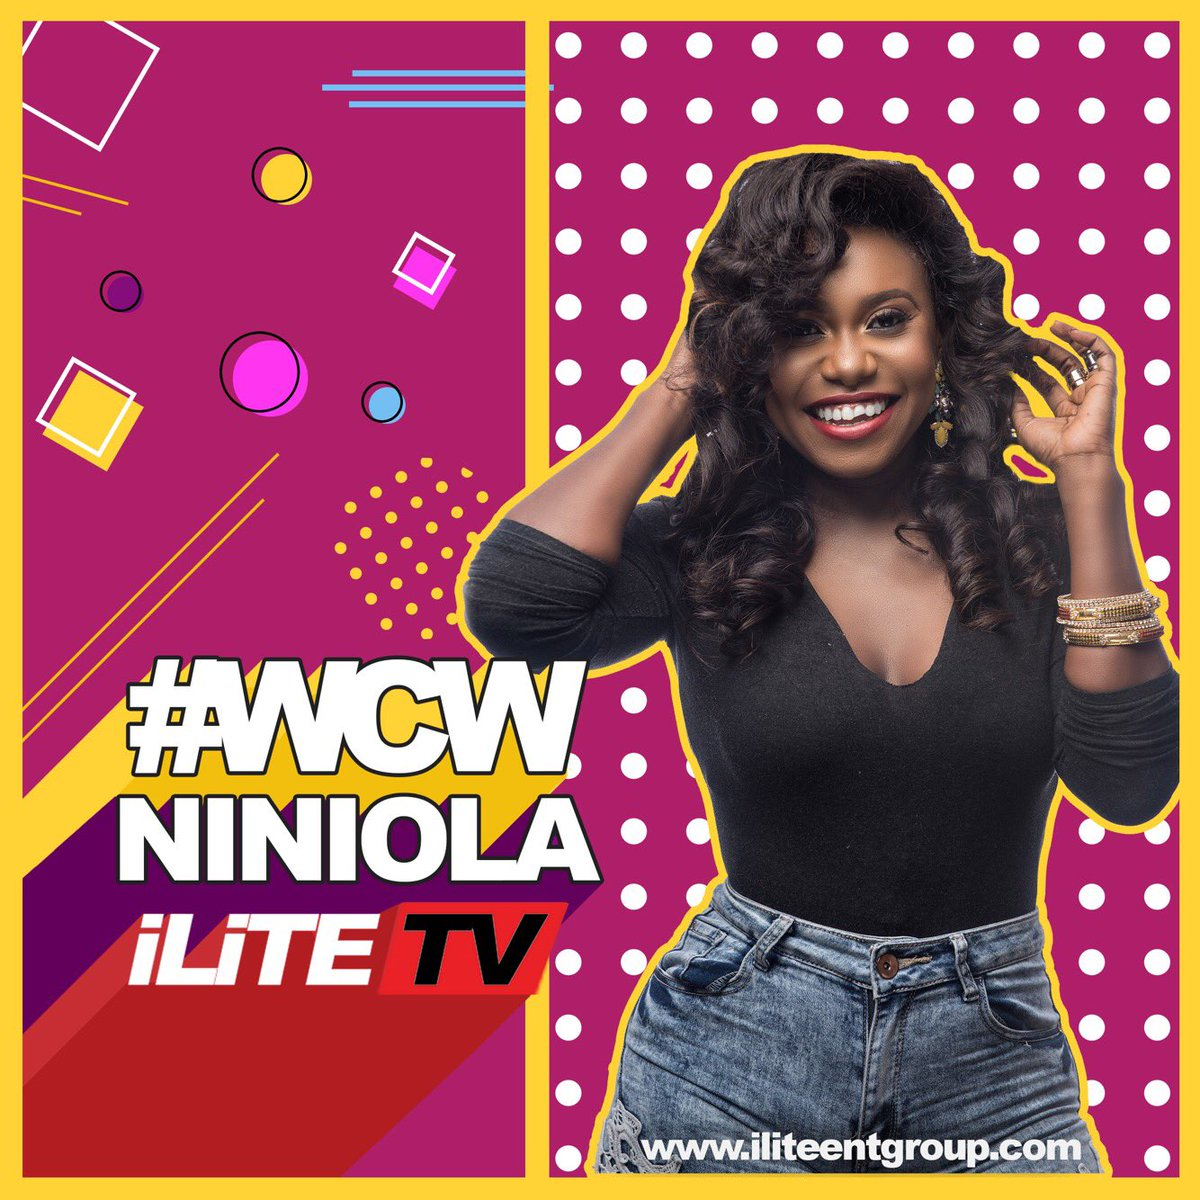 Our #WomanCrushWenesday is @officialnini...